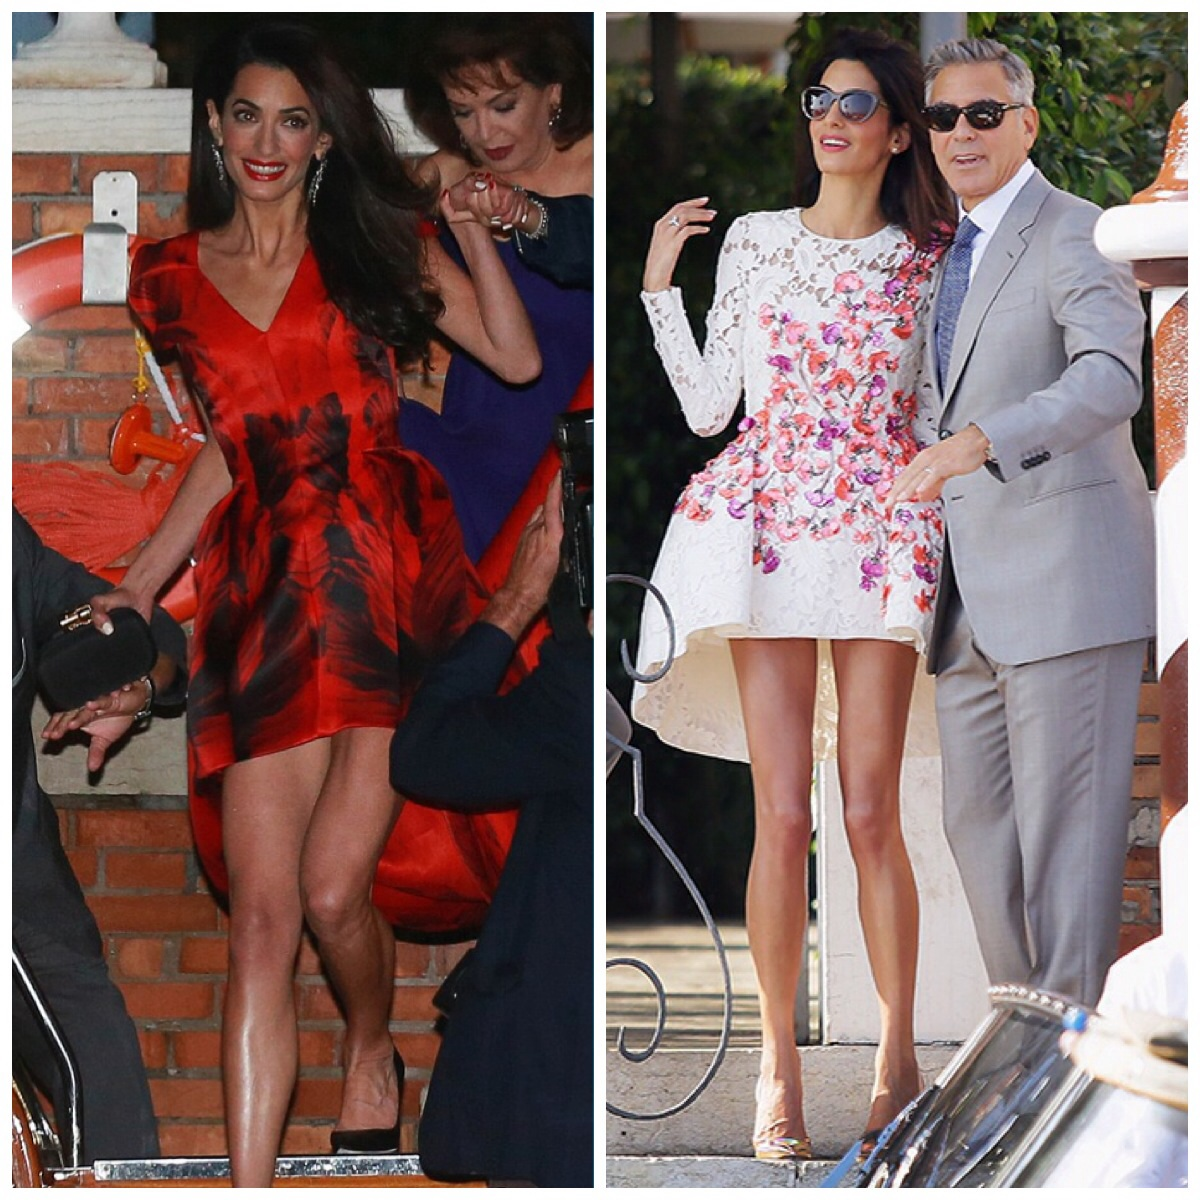 d91d651dd9f The Spectacle that was George Clooney s Wedding - The Dress DownThe ...